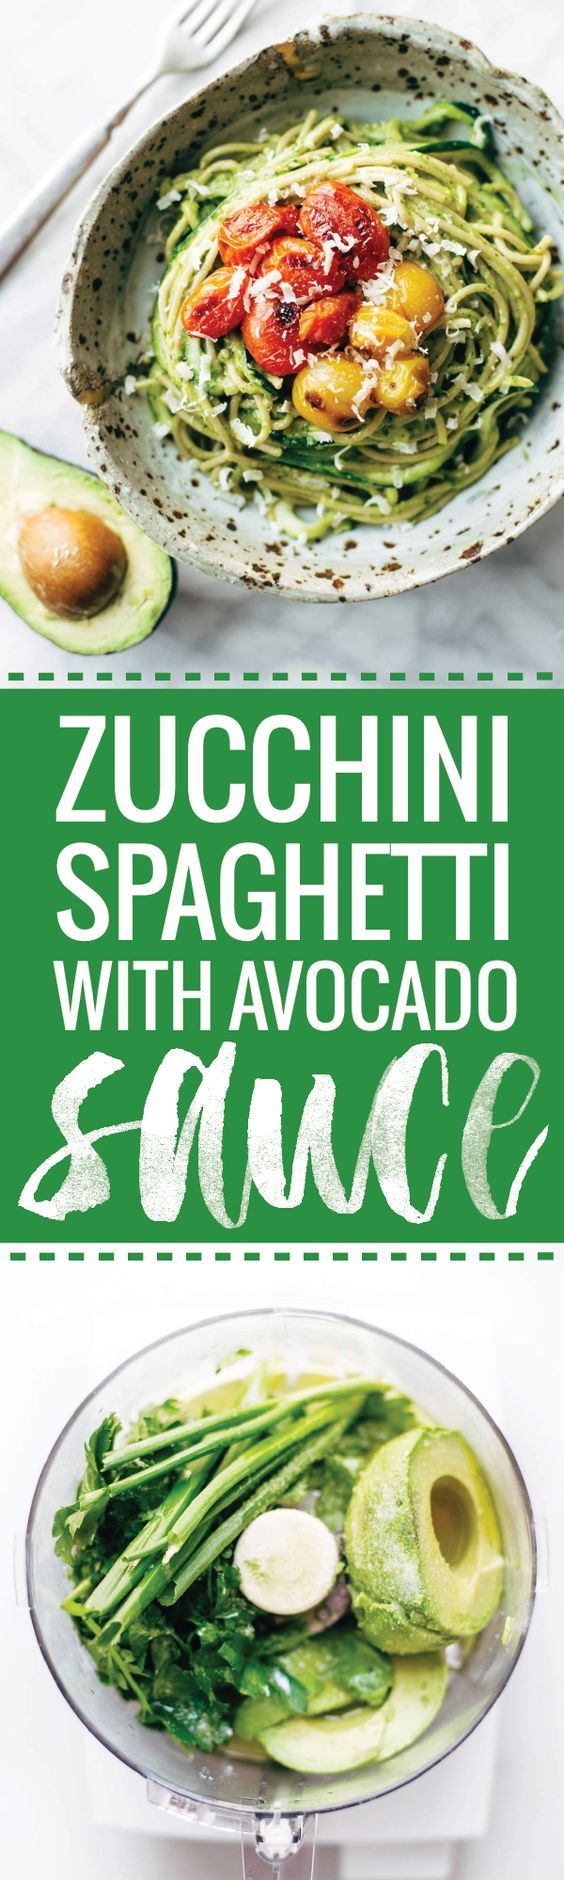 Burst Tomato and Zucchini Spaghetti with Avocado Sauce - a healthy plant-based recipe that comes together in 30 minutes! Perfect as a meal on its own, or as a side for grilled chicken or fish. Vegetarian / Vegan | pinchofyum.com: